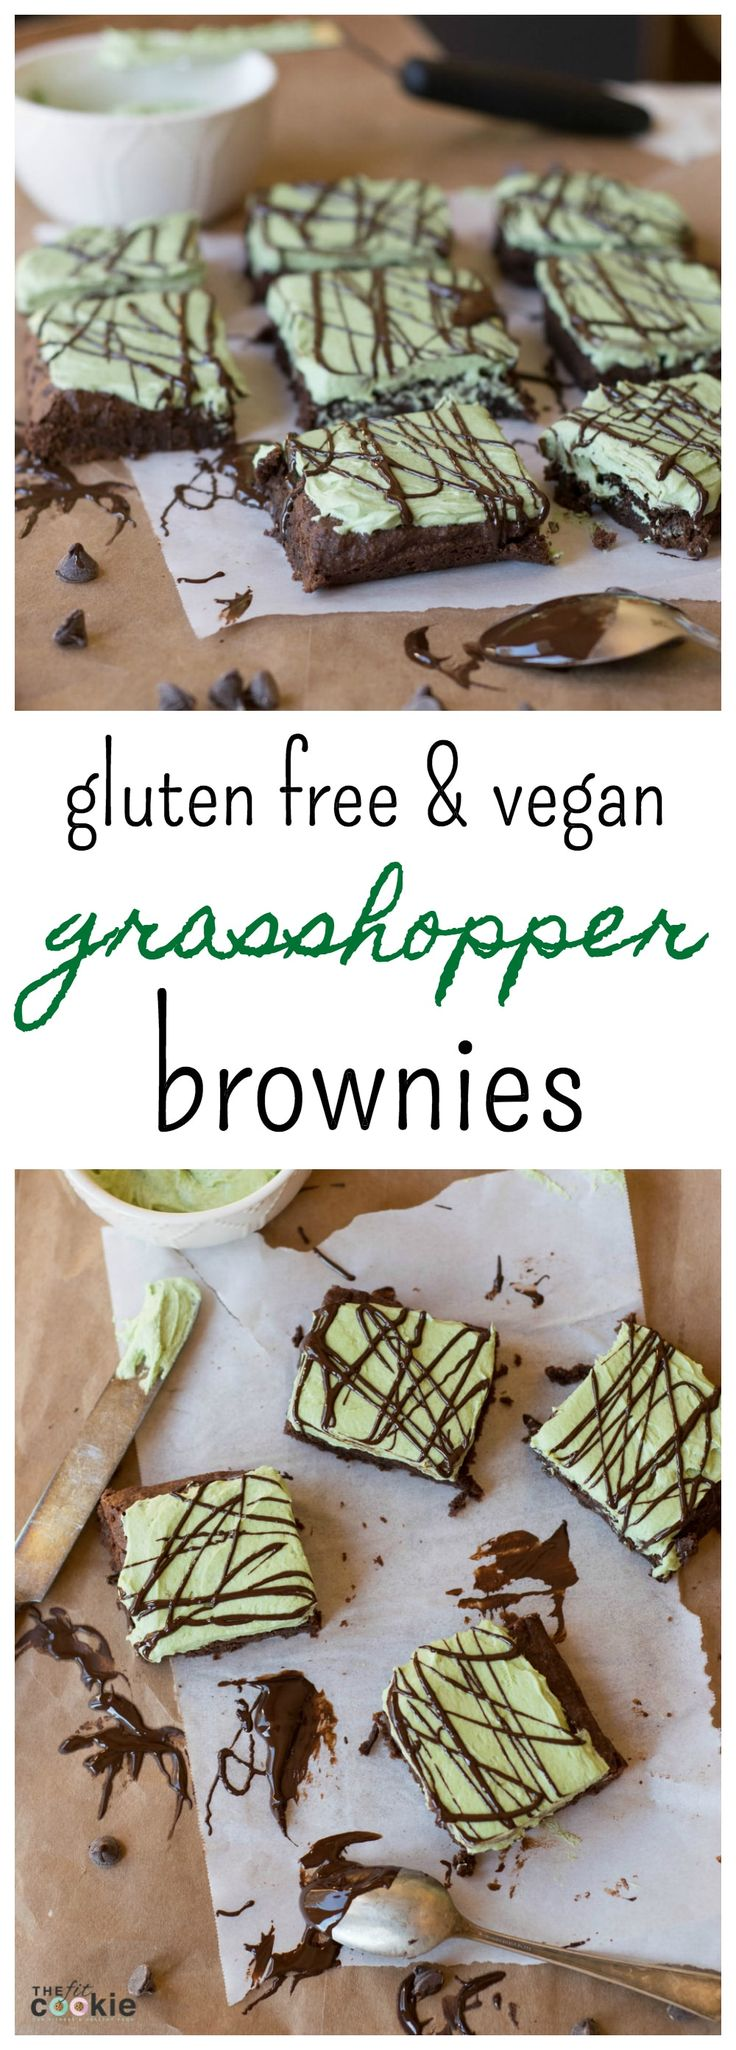 Gluten Free Grasshopper Brownies (Vegan): Dense and chewy gluten-free mint brownies covered with naturally colored mint frosting - these are AMAZING!! - @TheFitCookie